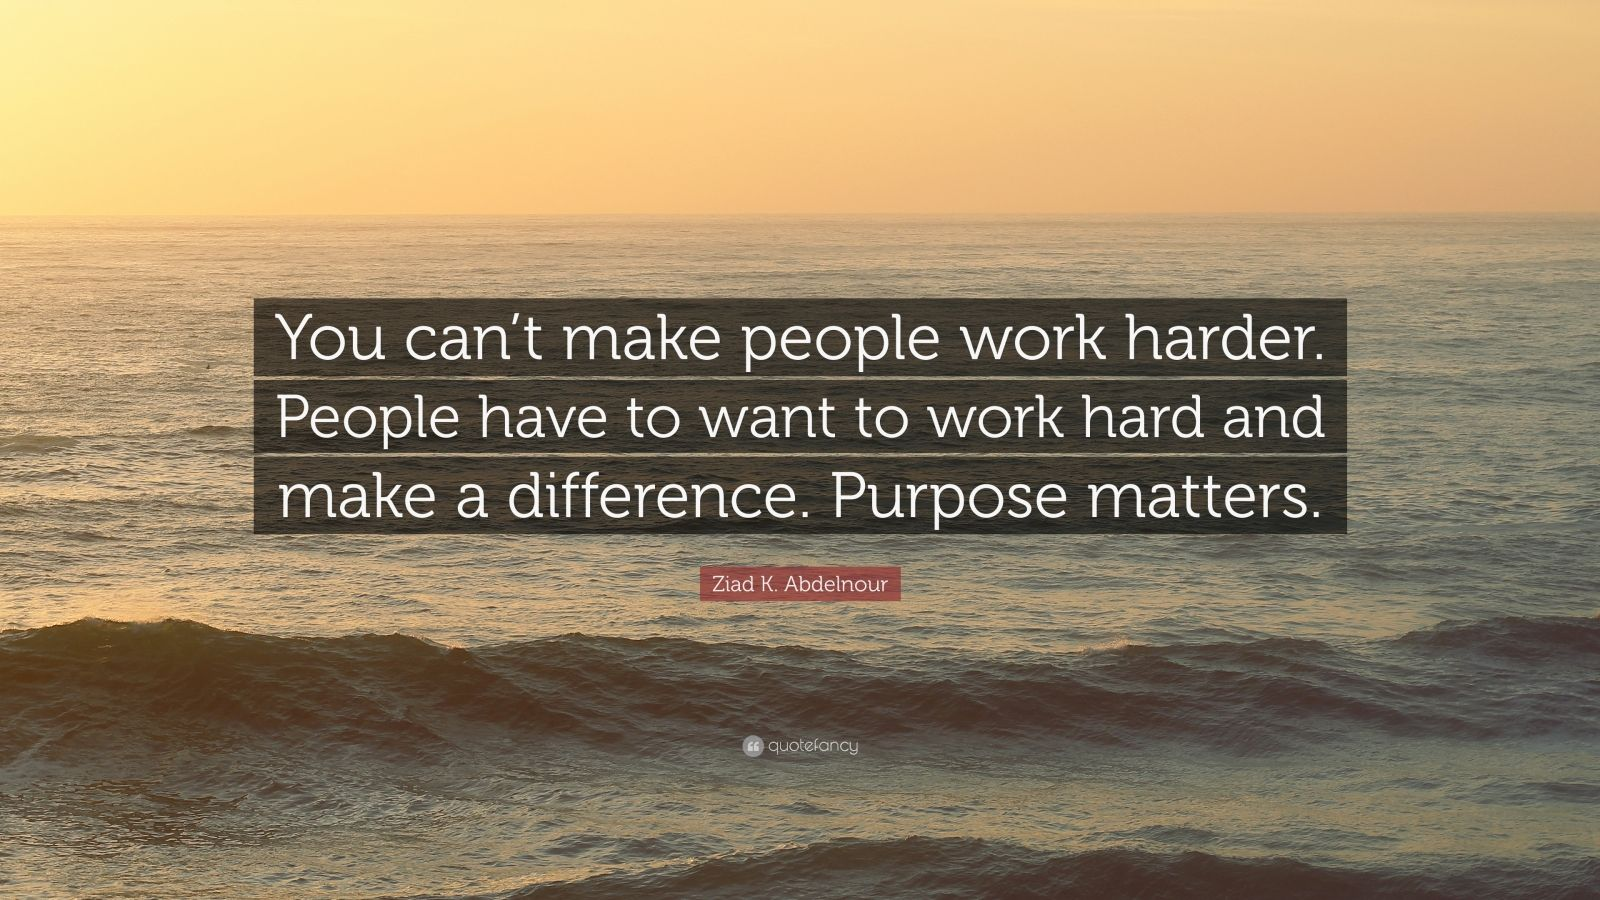 """Ziad K. Abdelnour Quote: """"You can't make people work harder. People have to want to work hard and make a difference. Purpose matters."""""""